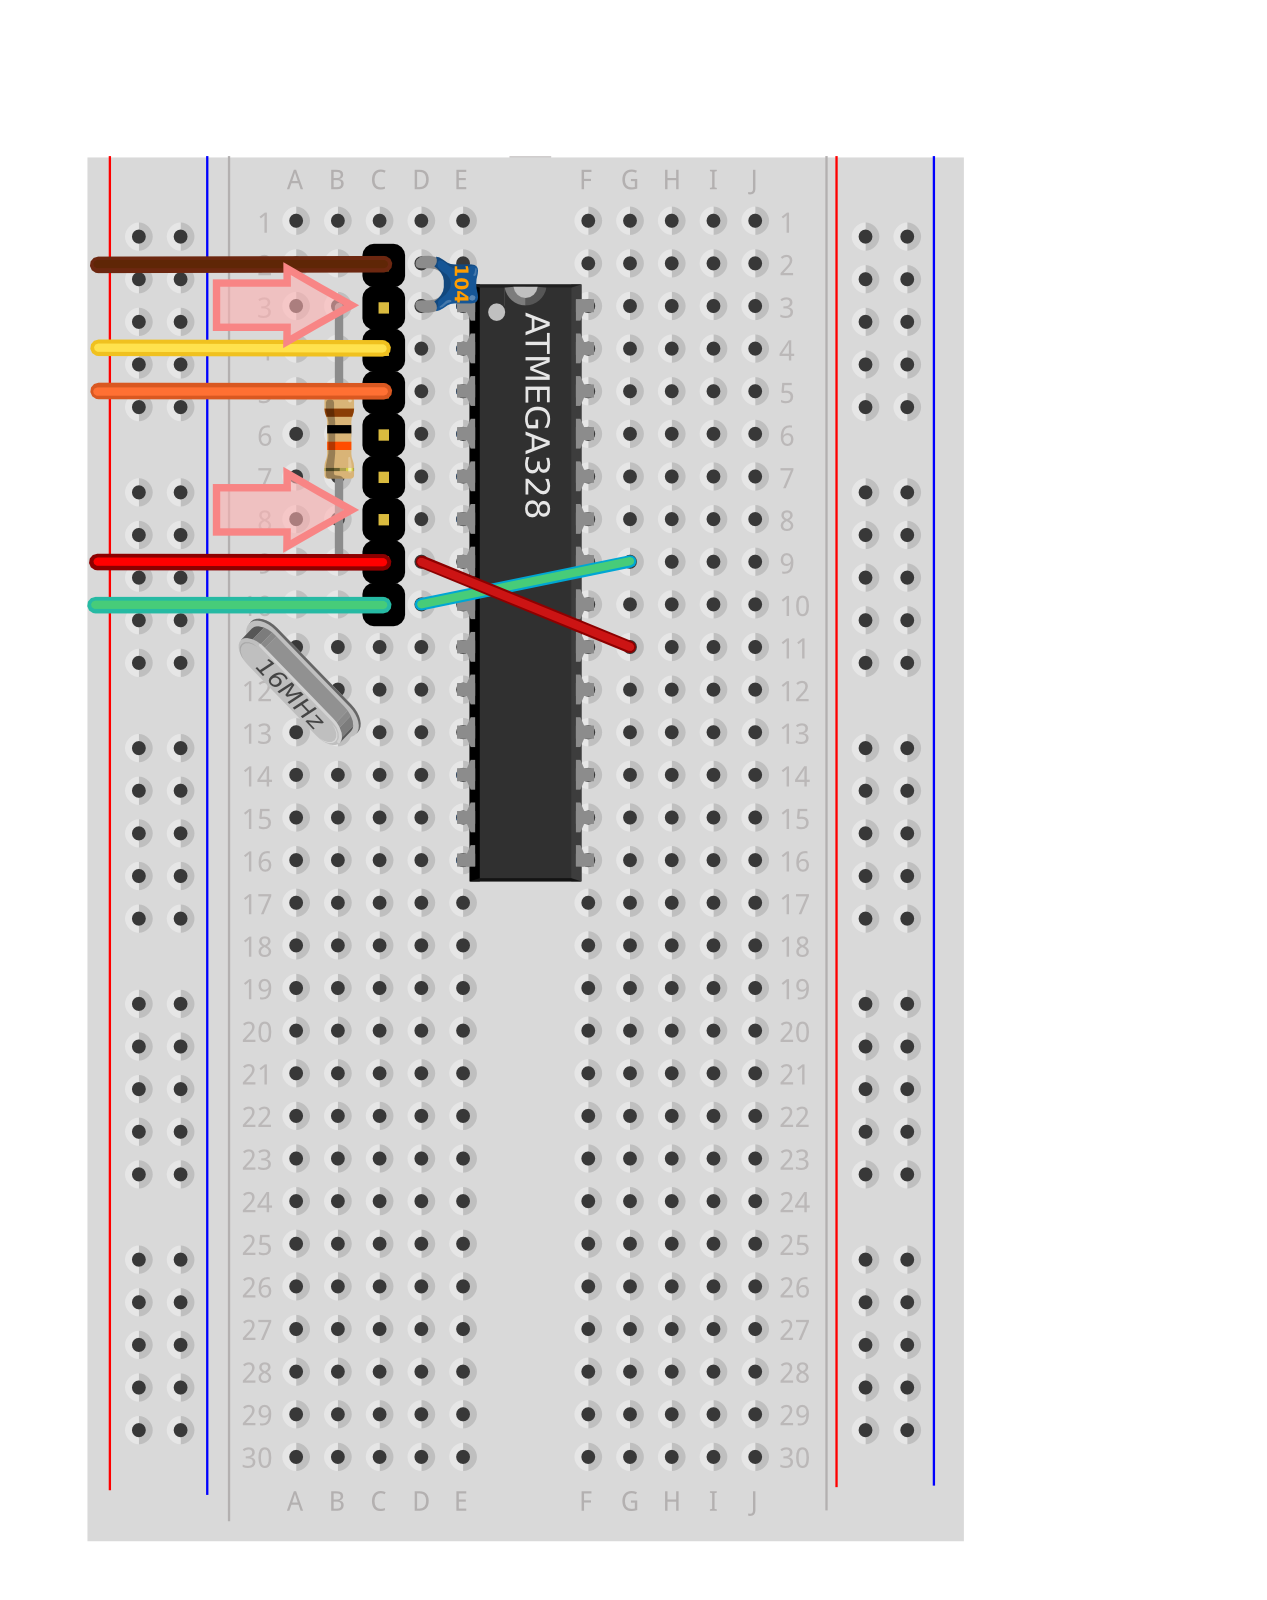 About This Guide Built The Circuit Up On Some Strip Board And Added Banana 9 Pin Header Uses An Area Where We Would Like To Add Pull Resistors Later In Build